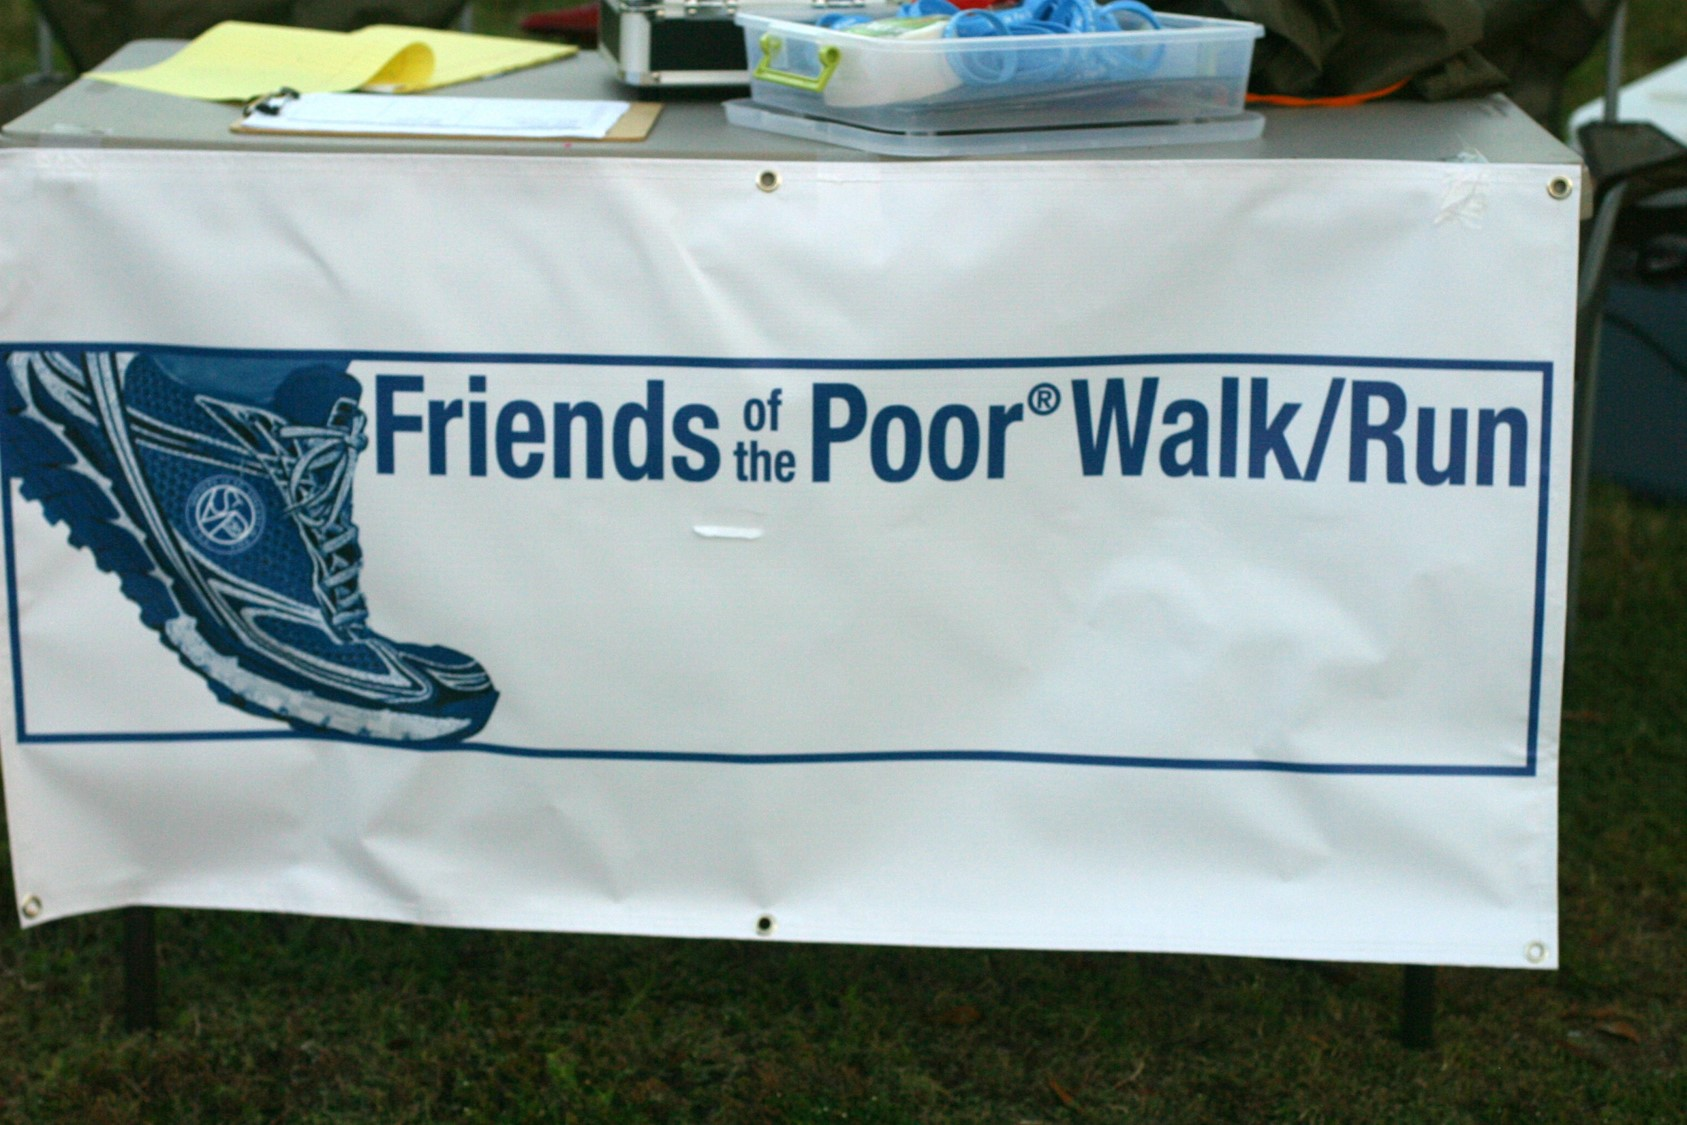 Key Club/Interact Club Walk for the Poor Bridge Walk